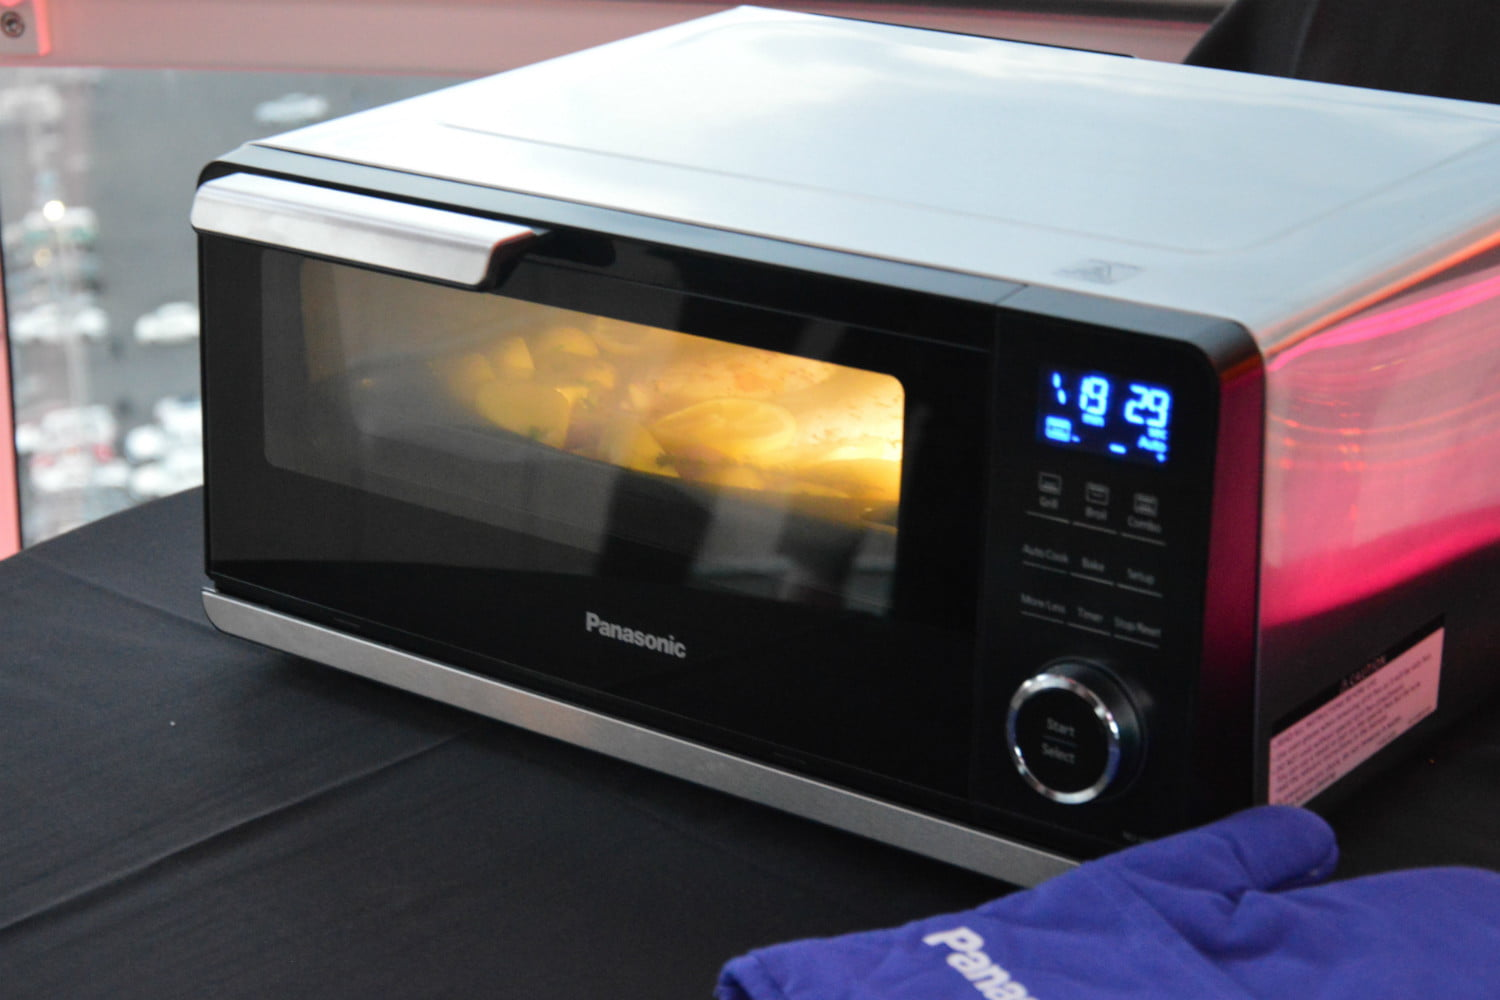 panasonic countertop induction oven ces 2017 3